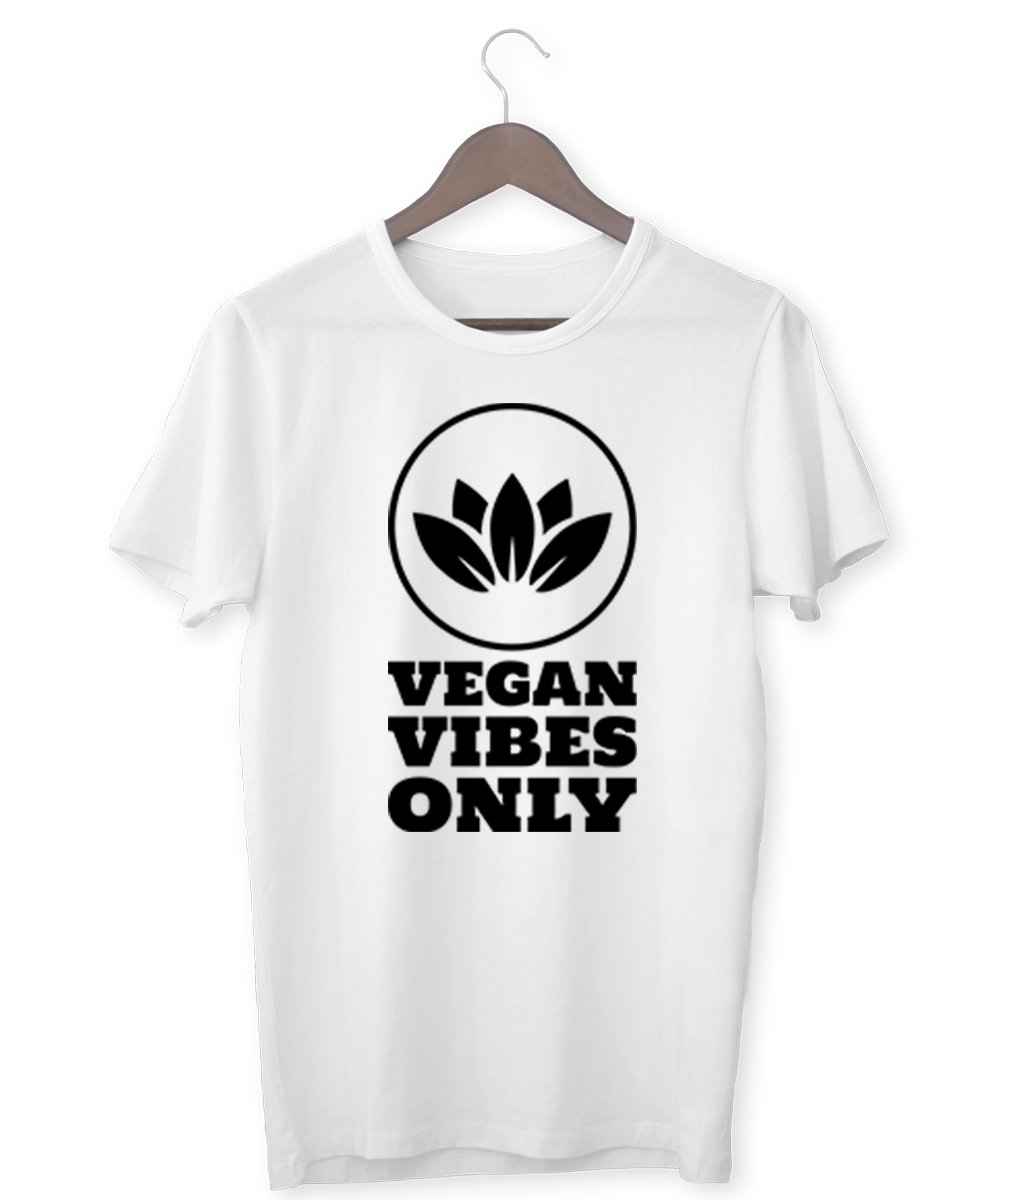 """Vegan Vibes Only"" Vegan T-Shirt - 100% Organic Cotton (Unisex) Clothing Vegan Original"